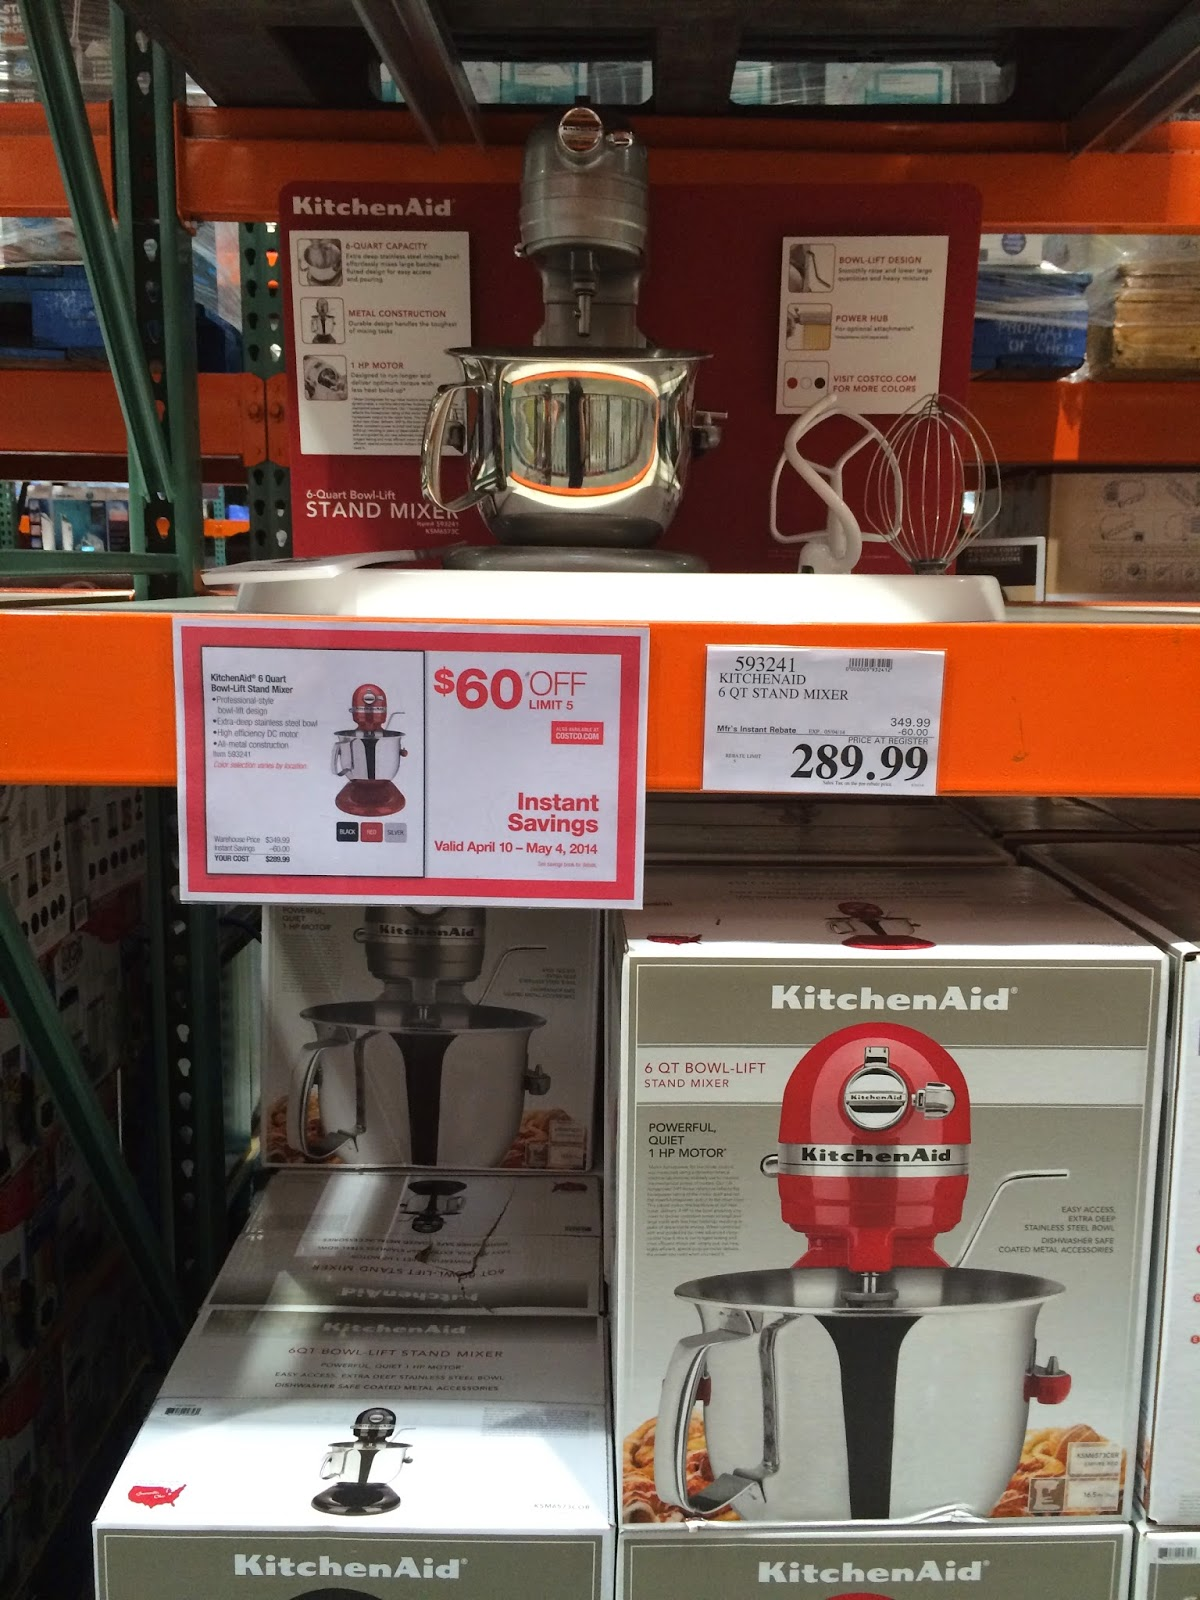 The Costco Connoisseur Cooks Illustrated Recommendations At Costco with The Most Stylish  Costco Kitchen Aid Mixer for House